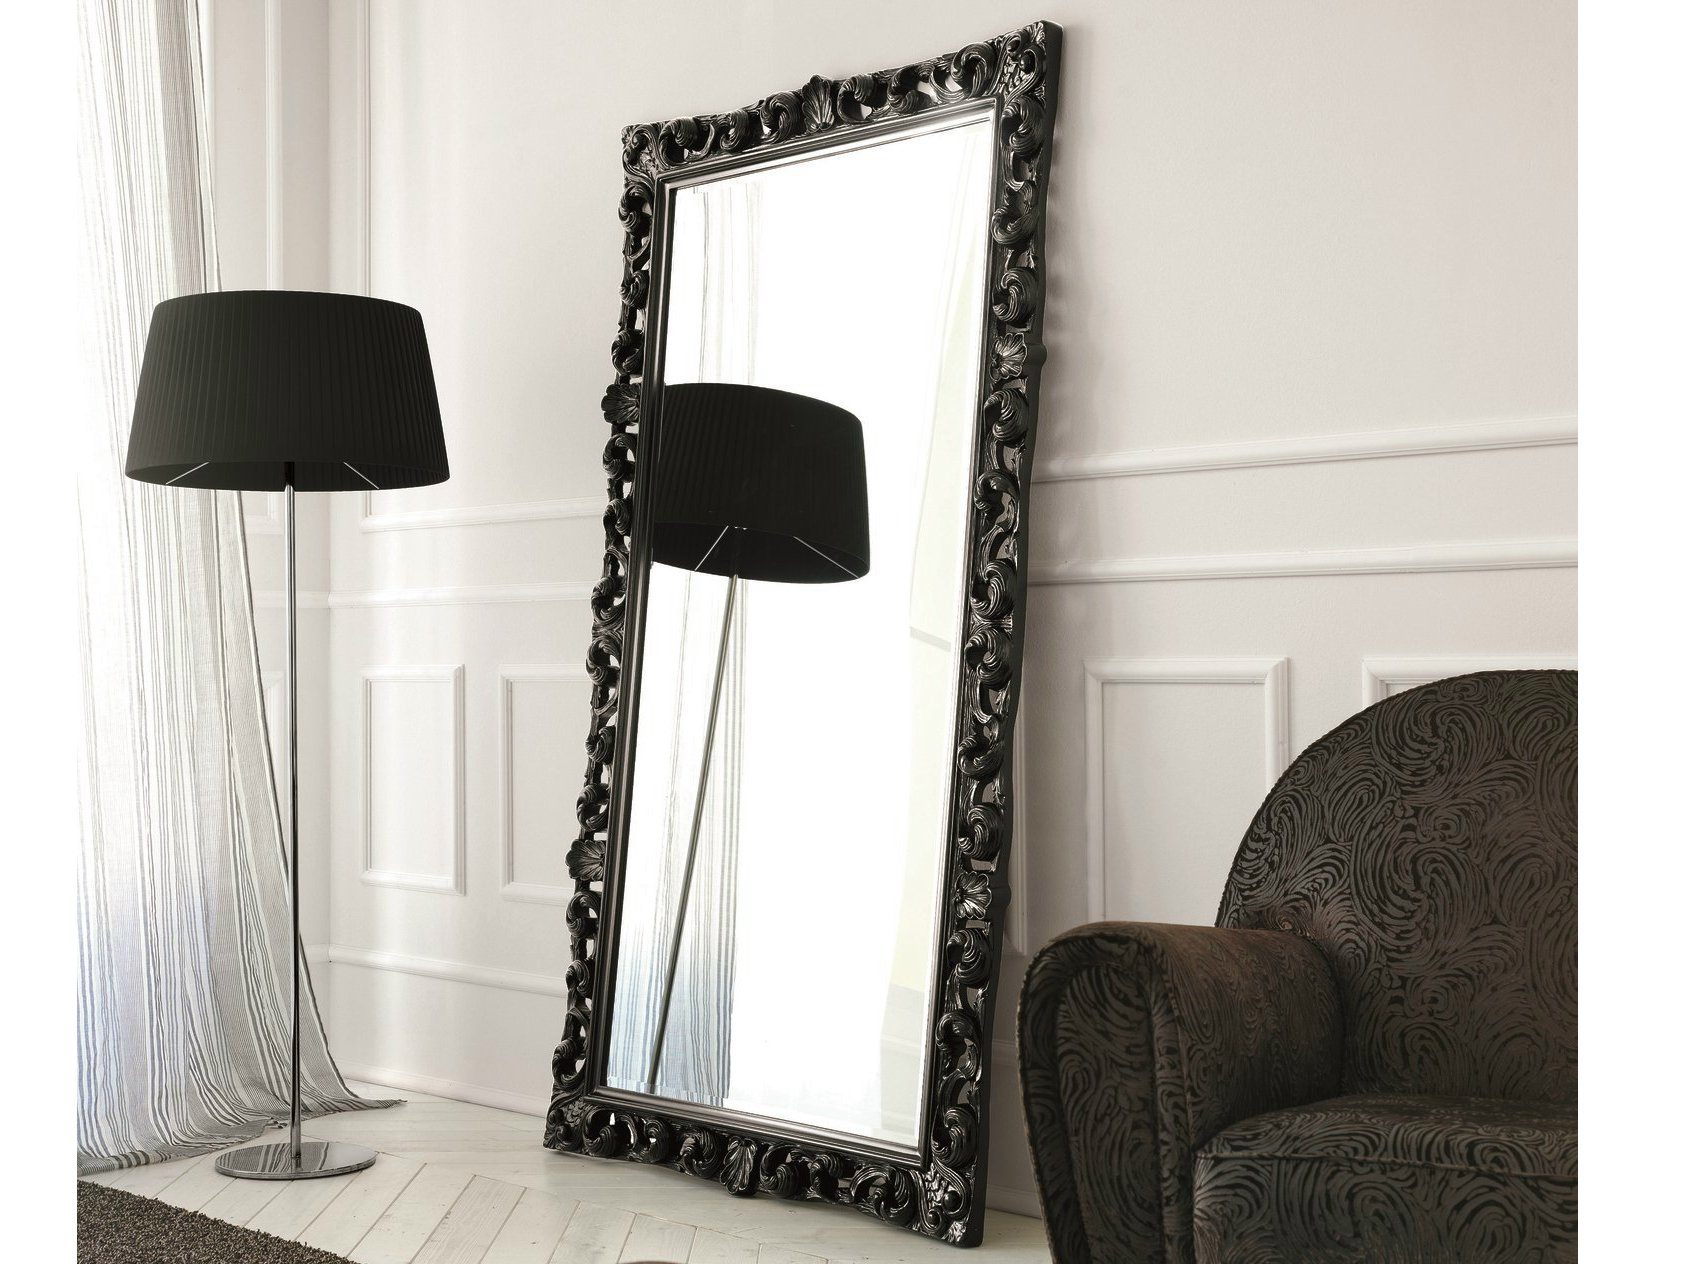 miroir rectangulaire de style baroque bombo collection colours by dall agnese design imago. Black Bedroom Furniture Sets. Home Design Ideas